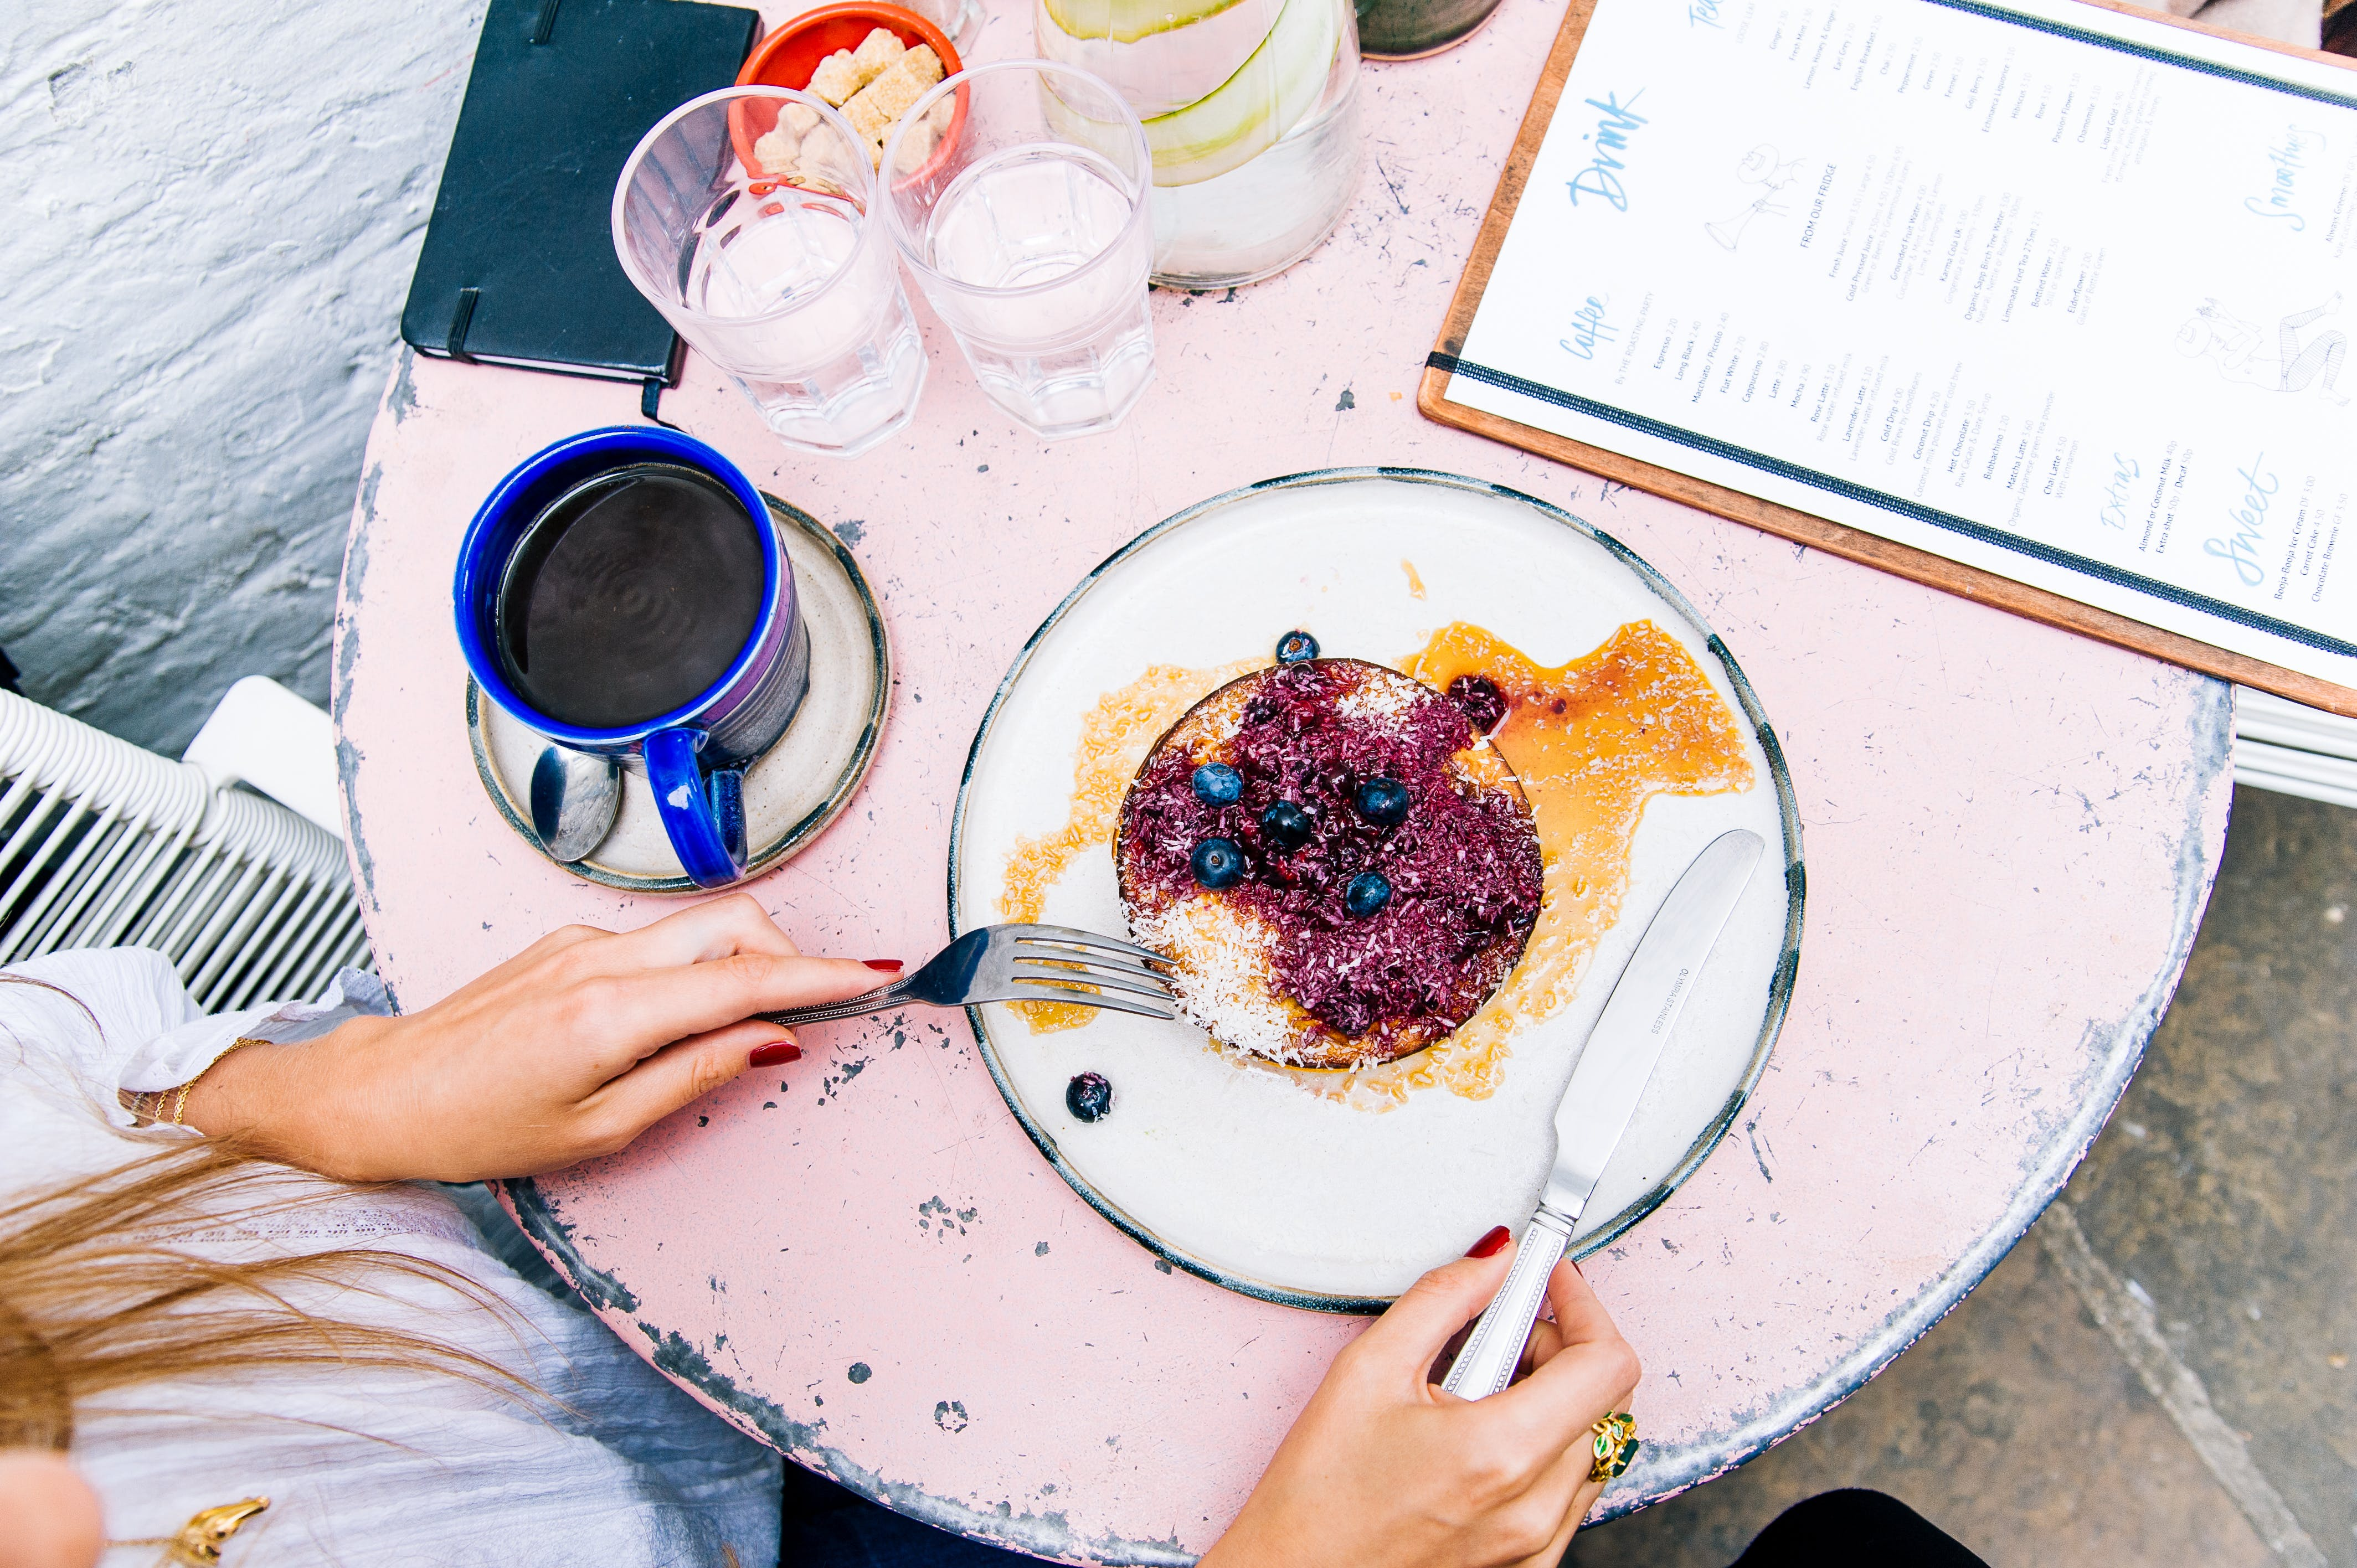 Woman Holding Spoon and Fork With Blackberries on Plate Beside Blue Ceramic Mug on White Wooden Table